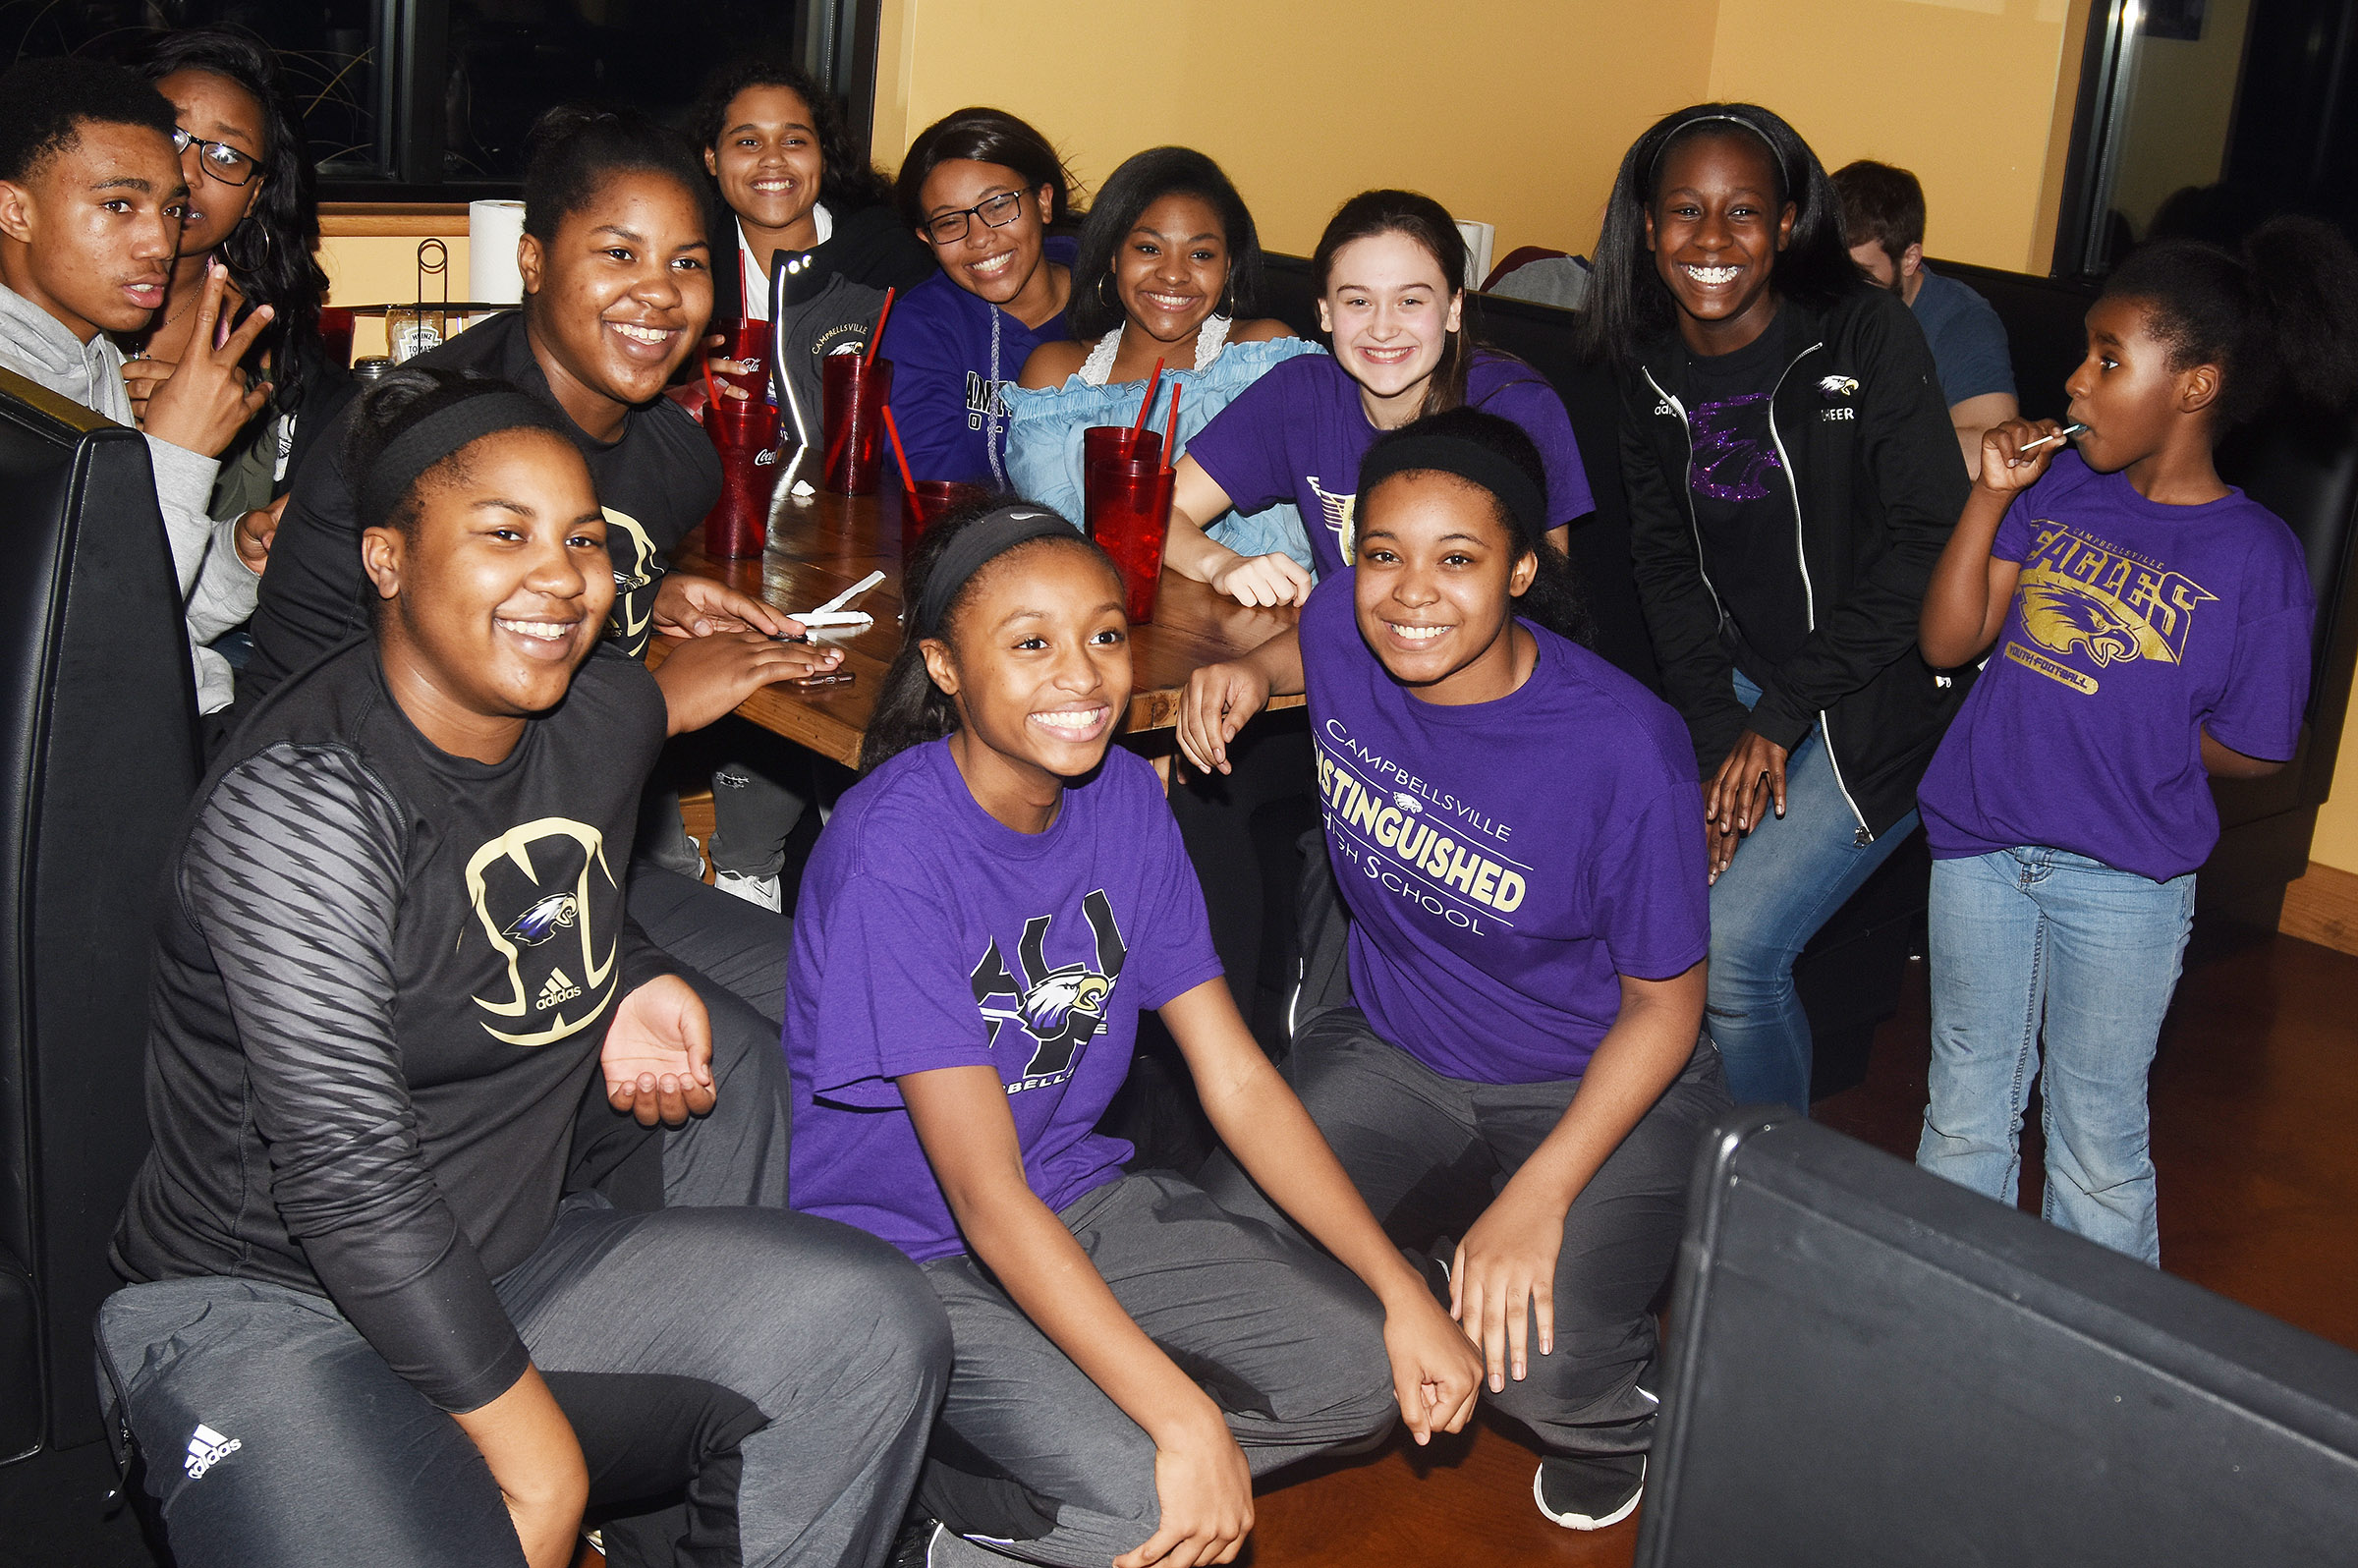 CHS girls' basketball players and their friends enjoy a celebration at Wings, Pizza N Things.